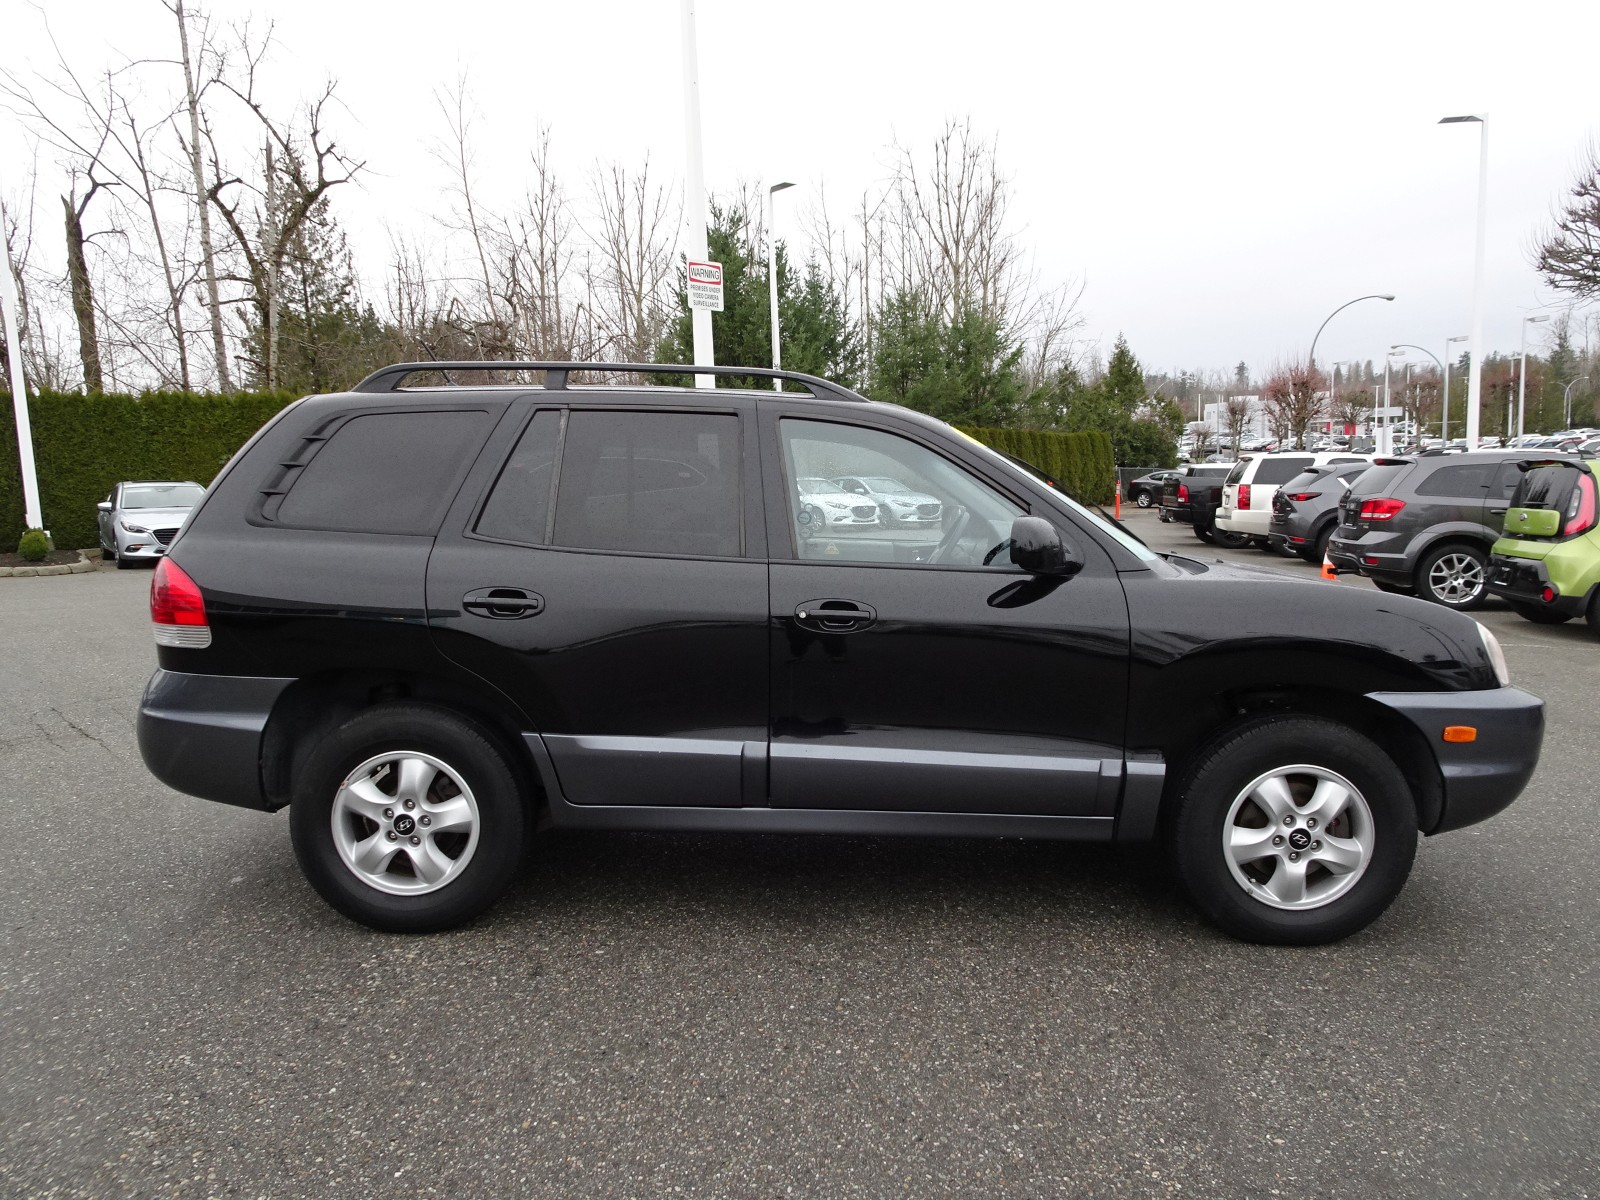 Used 2006 Hyundai Santa Fe in Abbotsford,BC